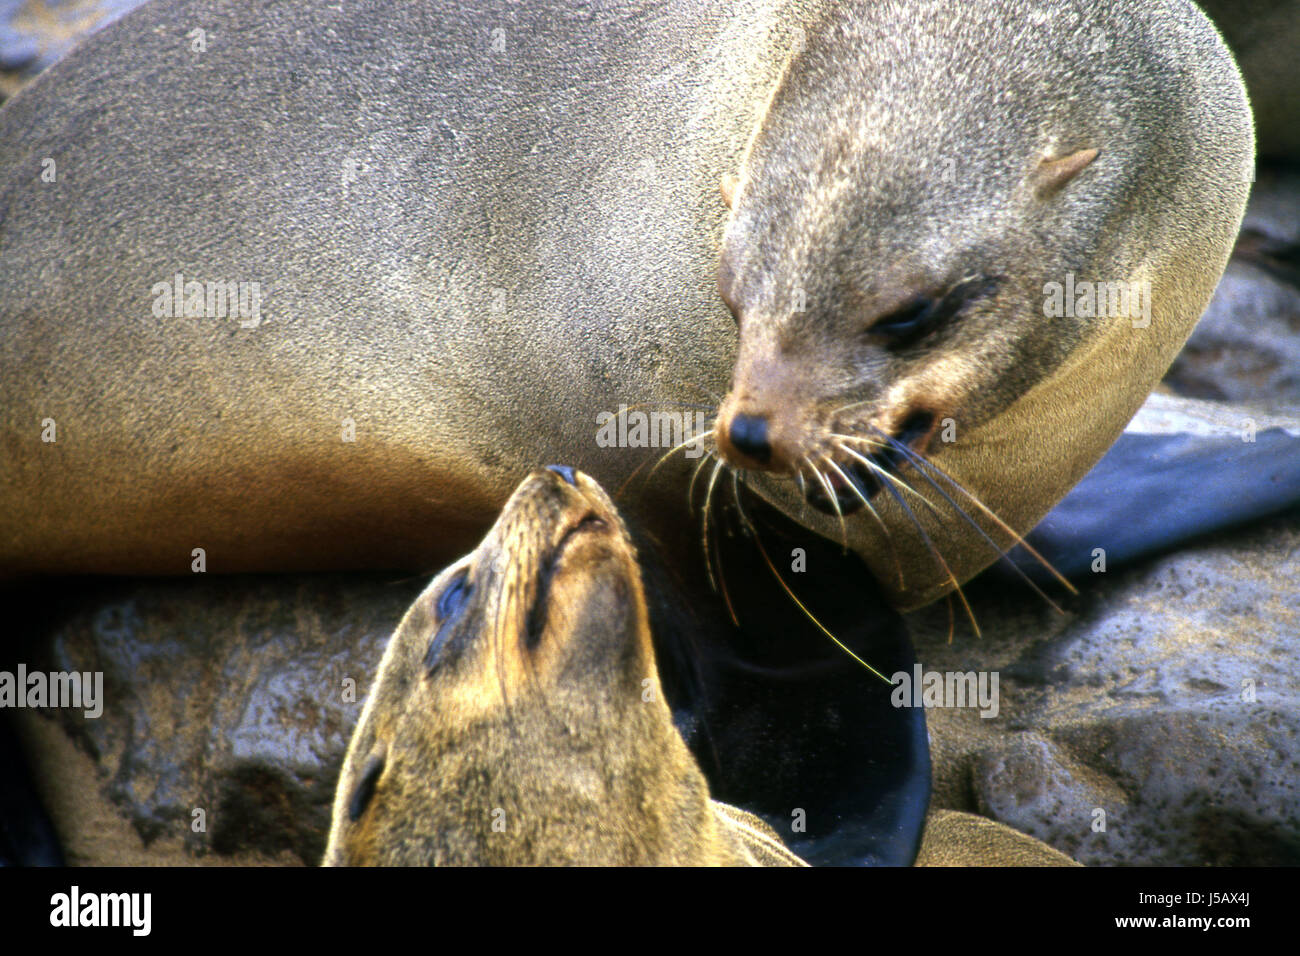 namibia seal motherly love liaison familiarity pelzrobbe meeressuger - Stock Image